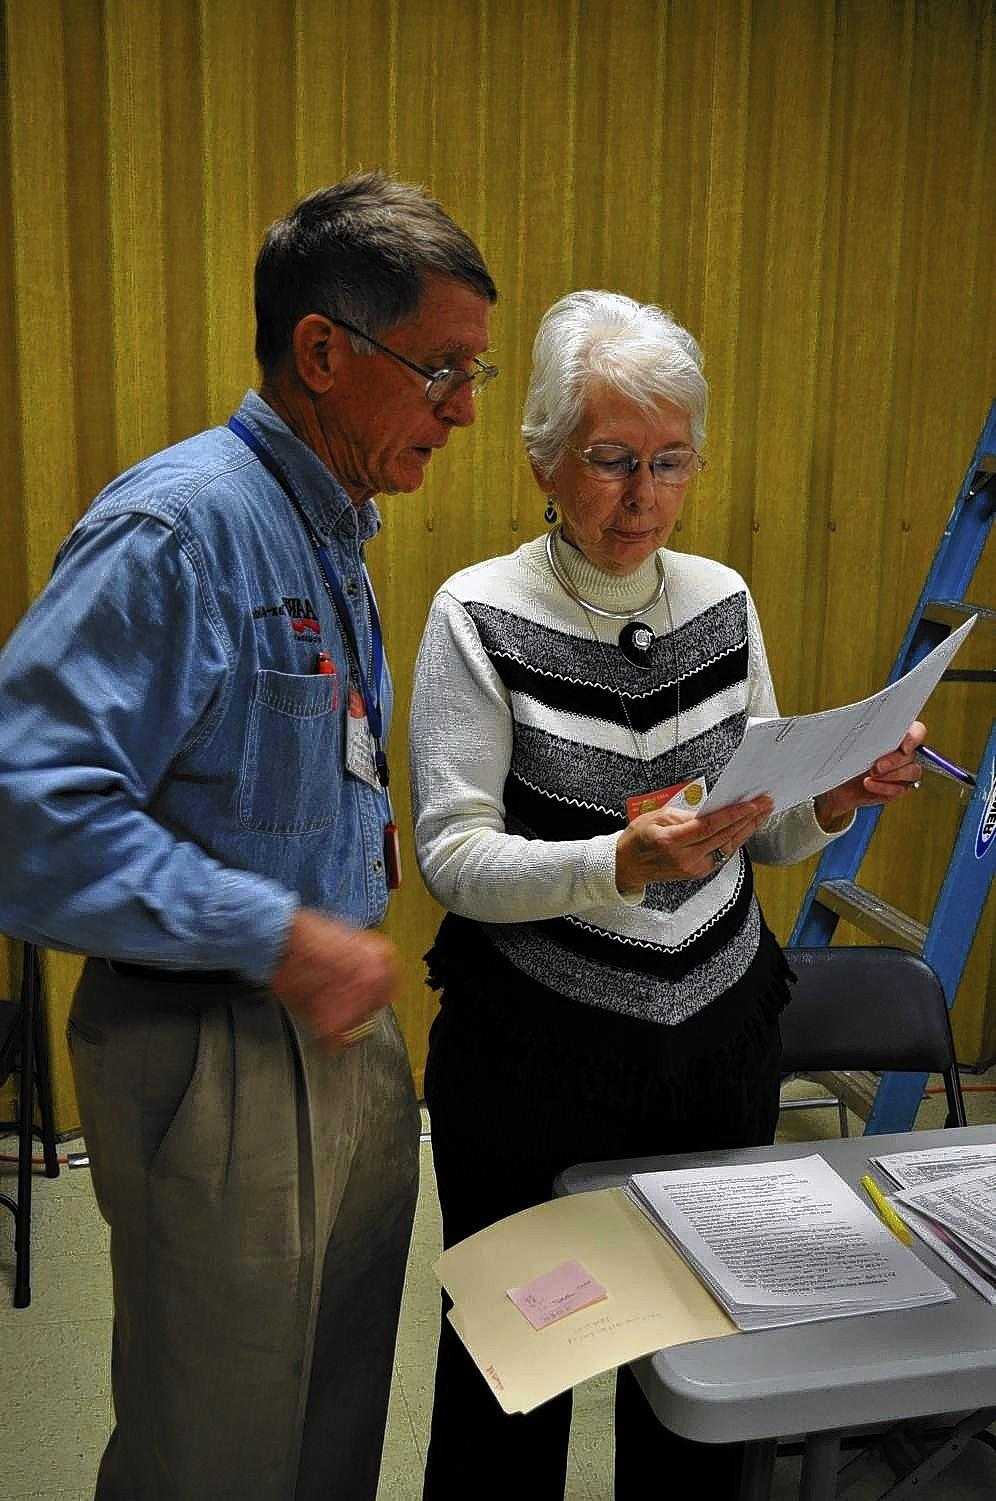 The local AARP chapter provides a volunteer tax aid team that offers free tax preparation help in five different locations on the Peninsula